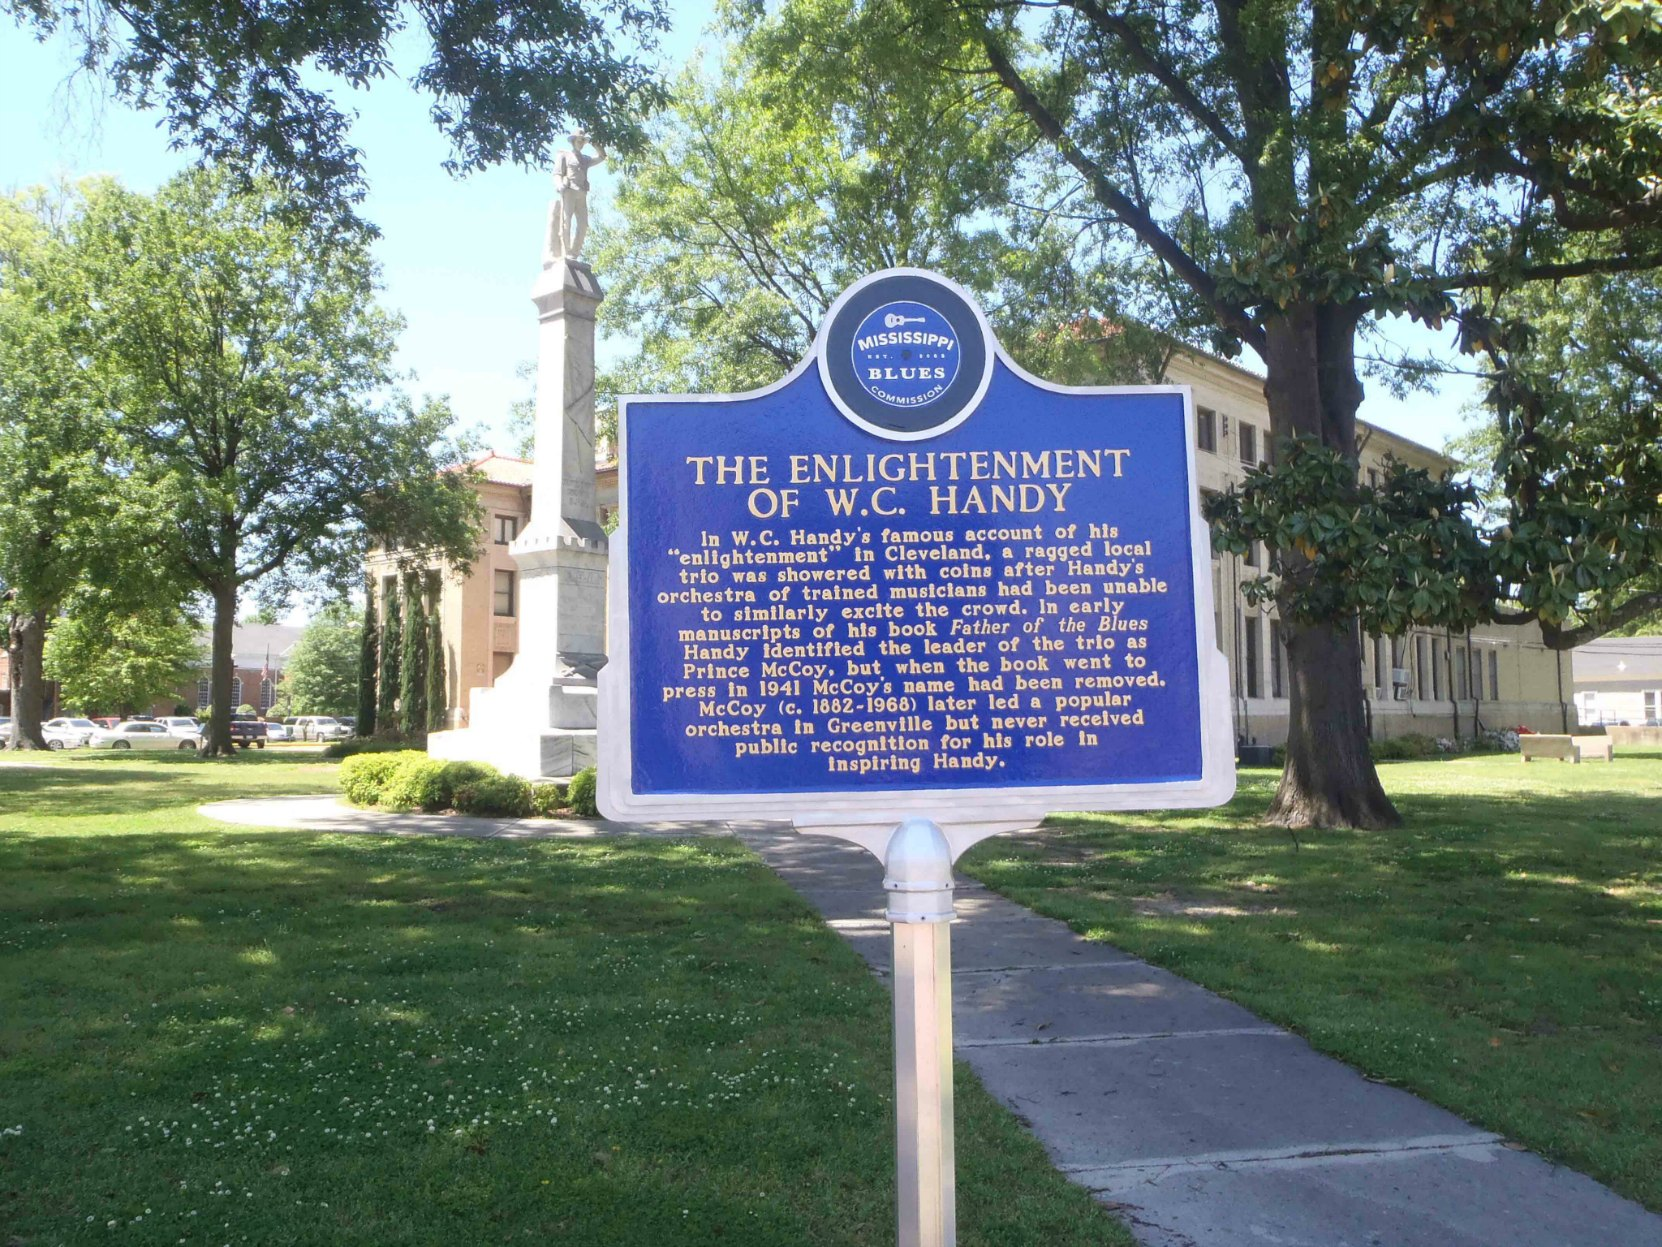 Mississippi Blues Trail marker commemorating The Enlightenment Of W.C. Handy, outside the Bolivar County Courthouse, Cleveland, Mississippi